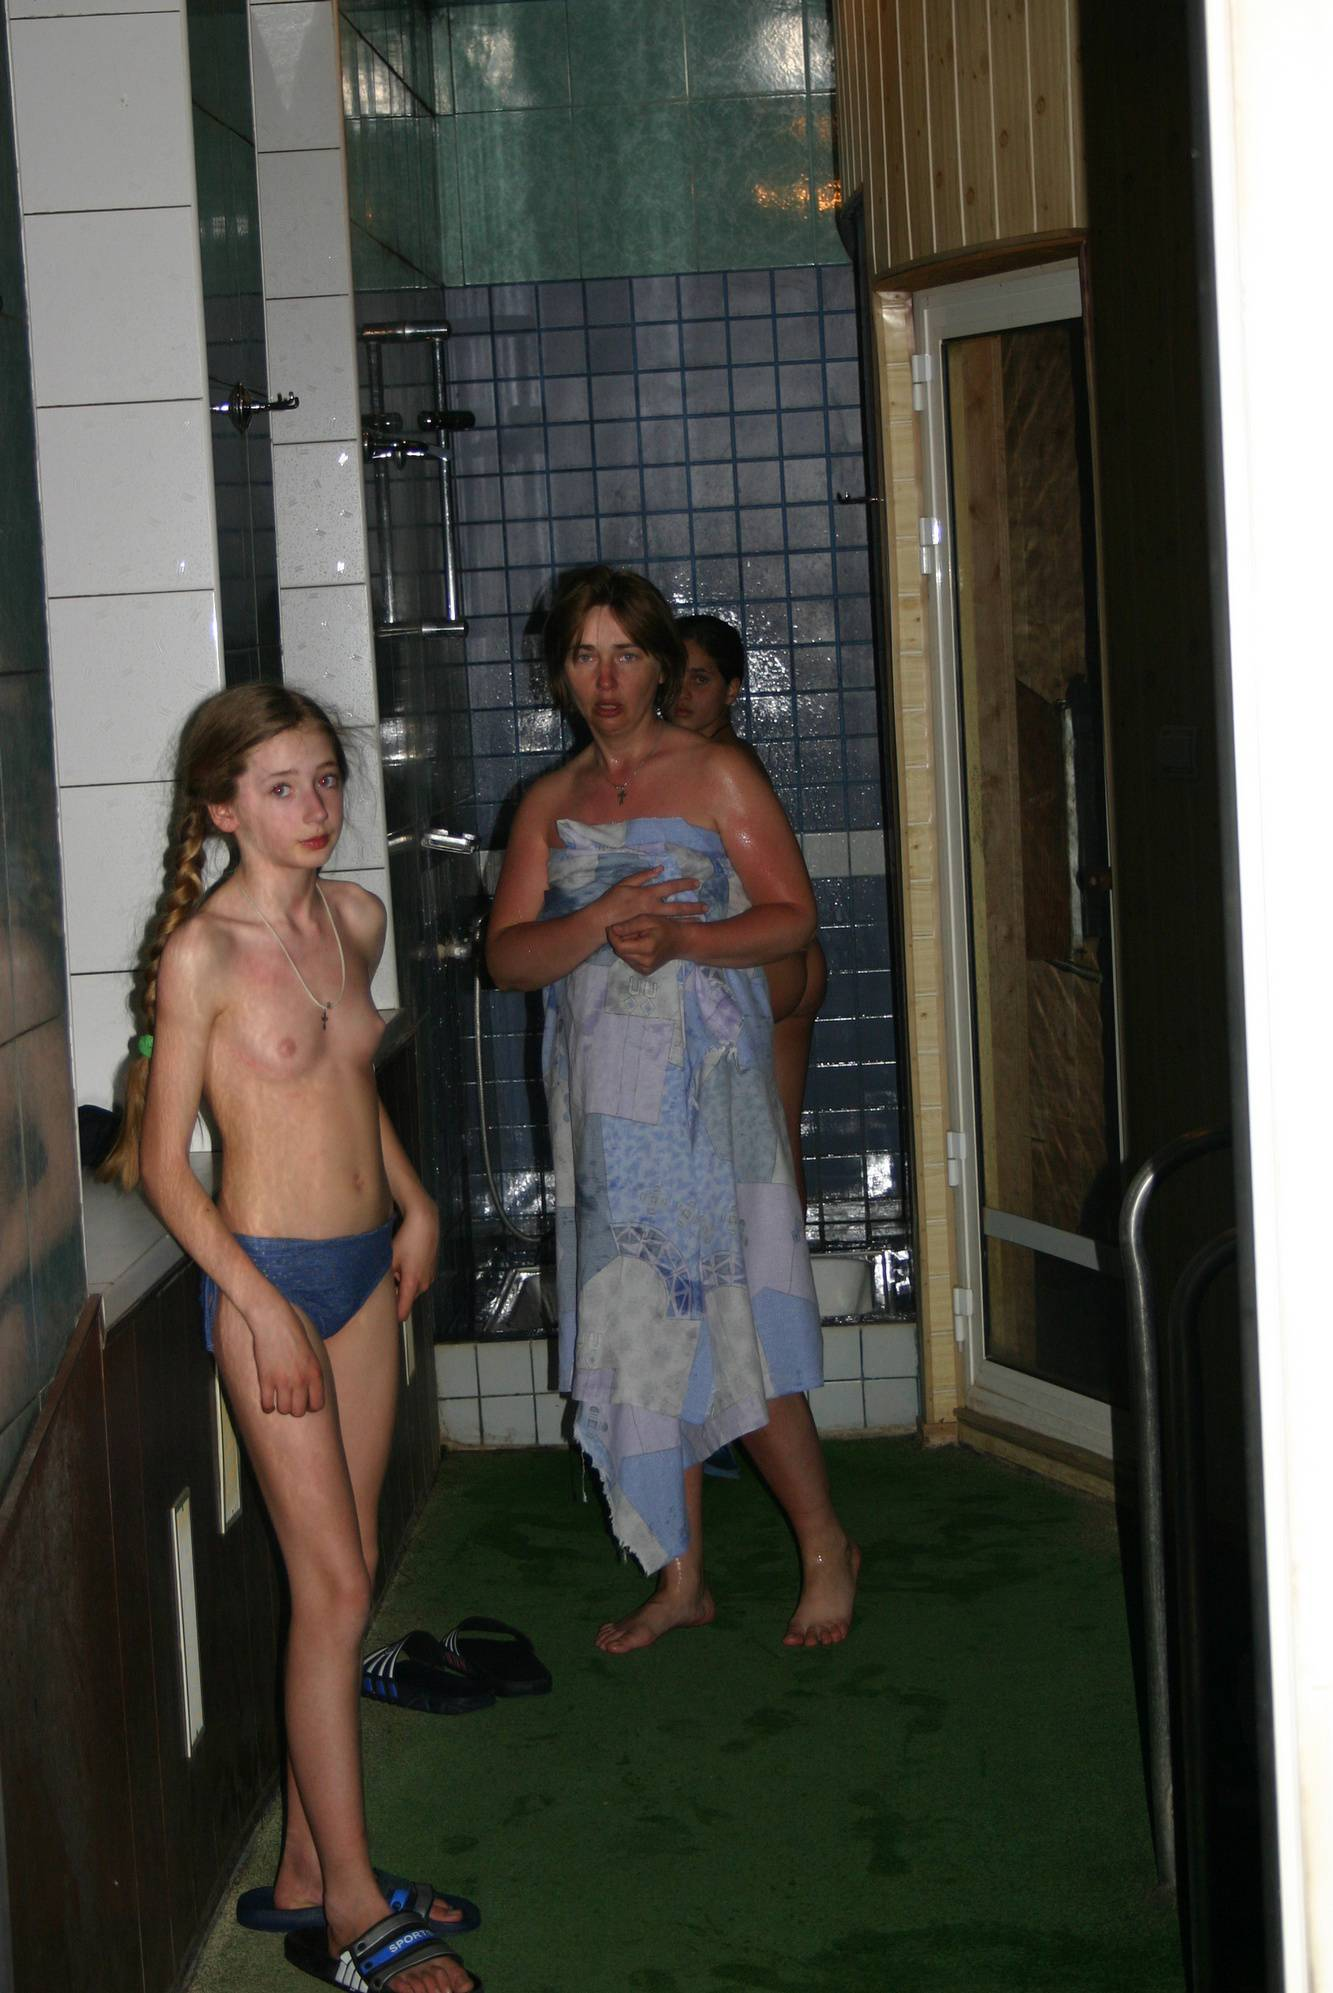 Family Naturist Pool Water - 2